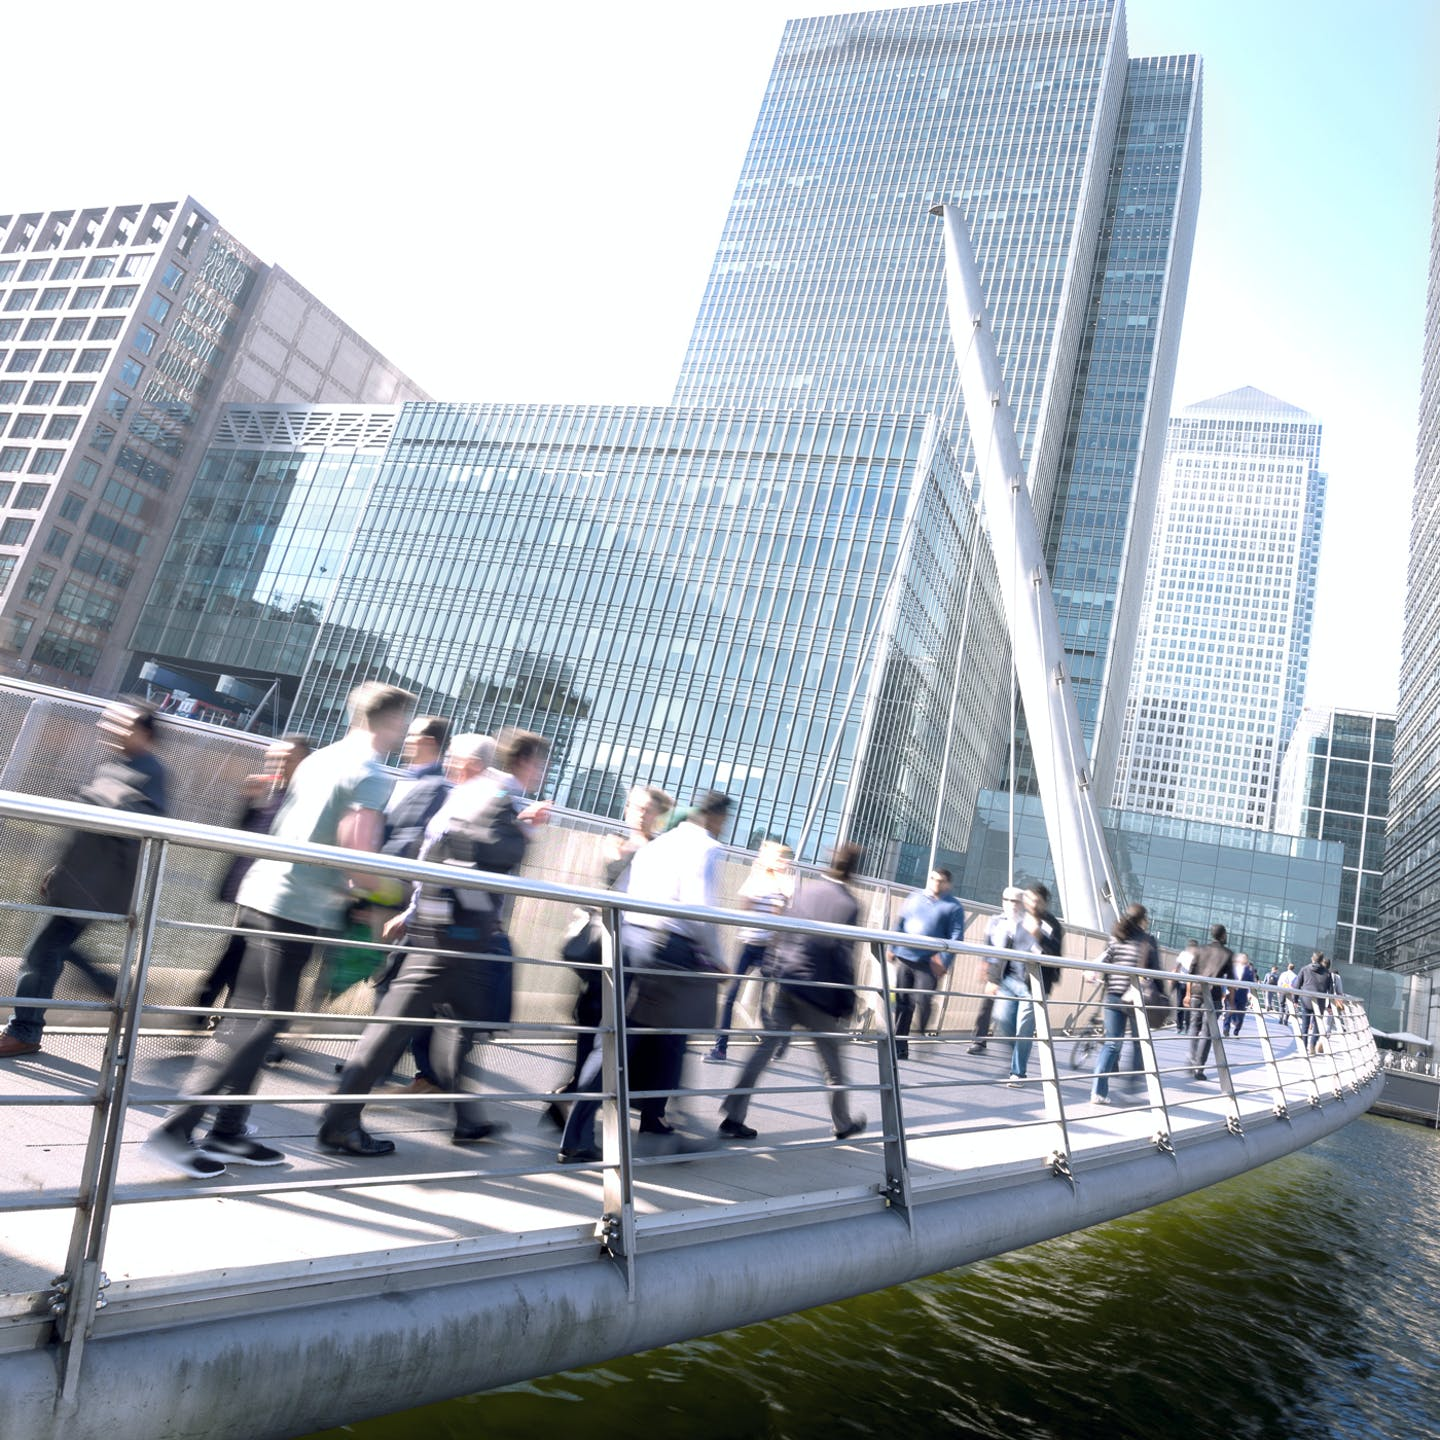 People in the financial district in London